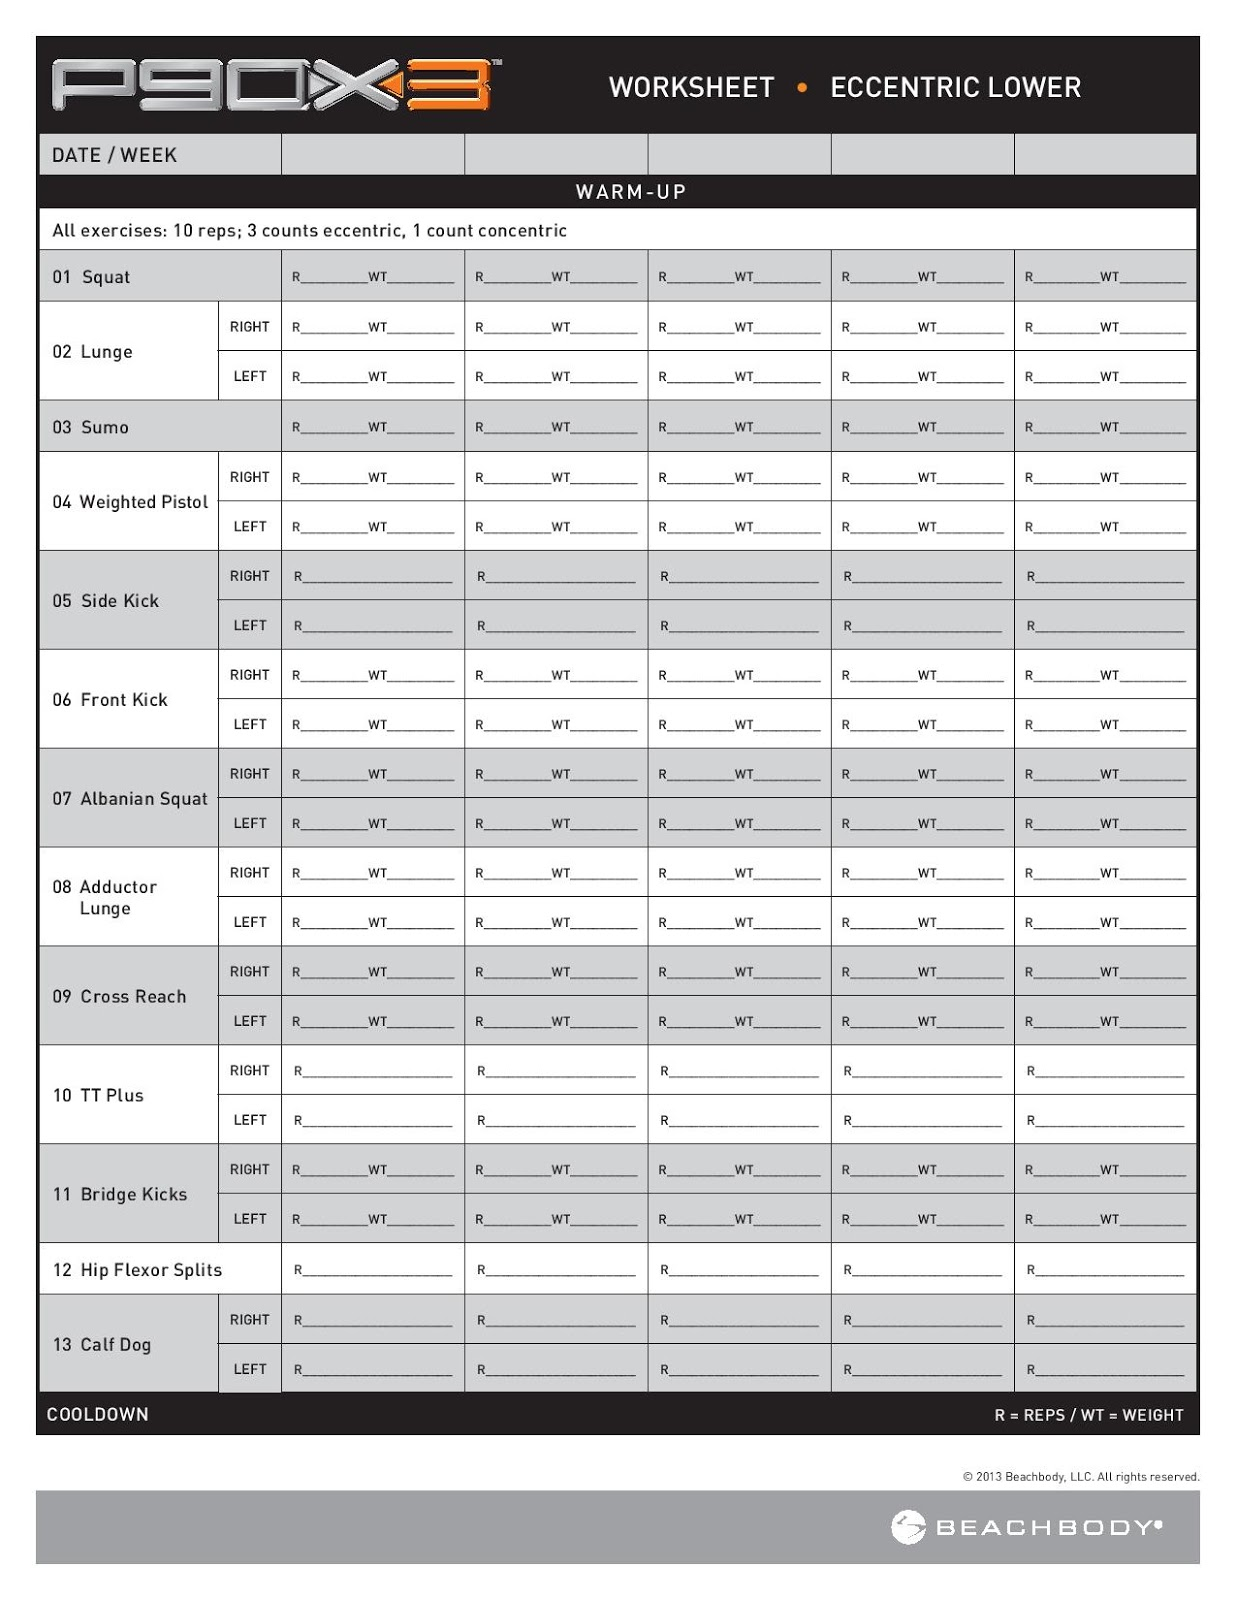 Printables P90x3 Worksheets p90x3 worksheets workouts here below is the worksheet for eccentric upper